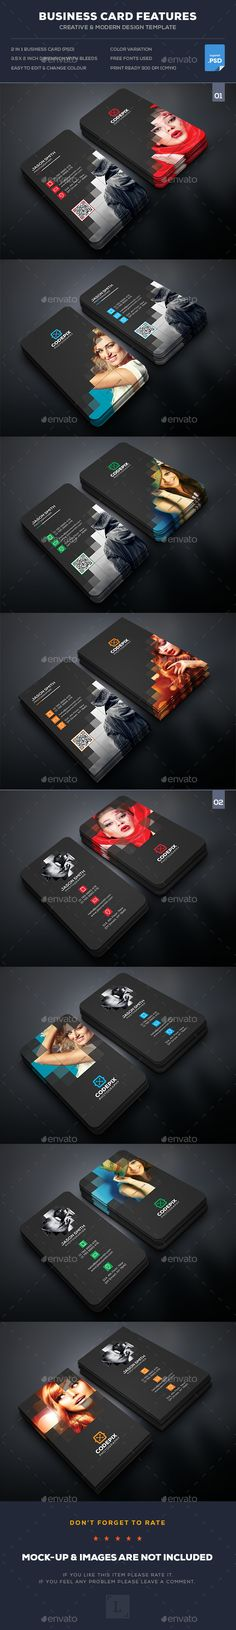 Photography business card bundle photography business cards photography business cards bundle cheaphphosting Gallery